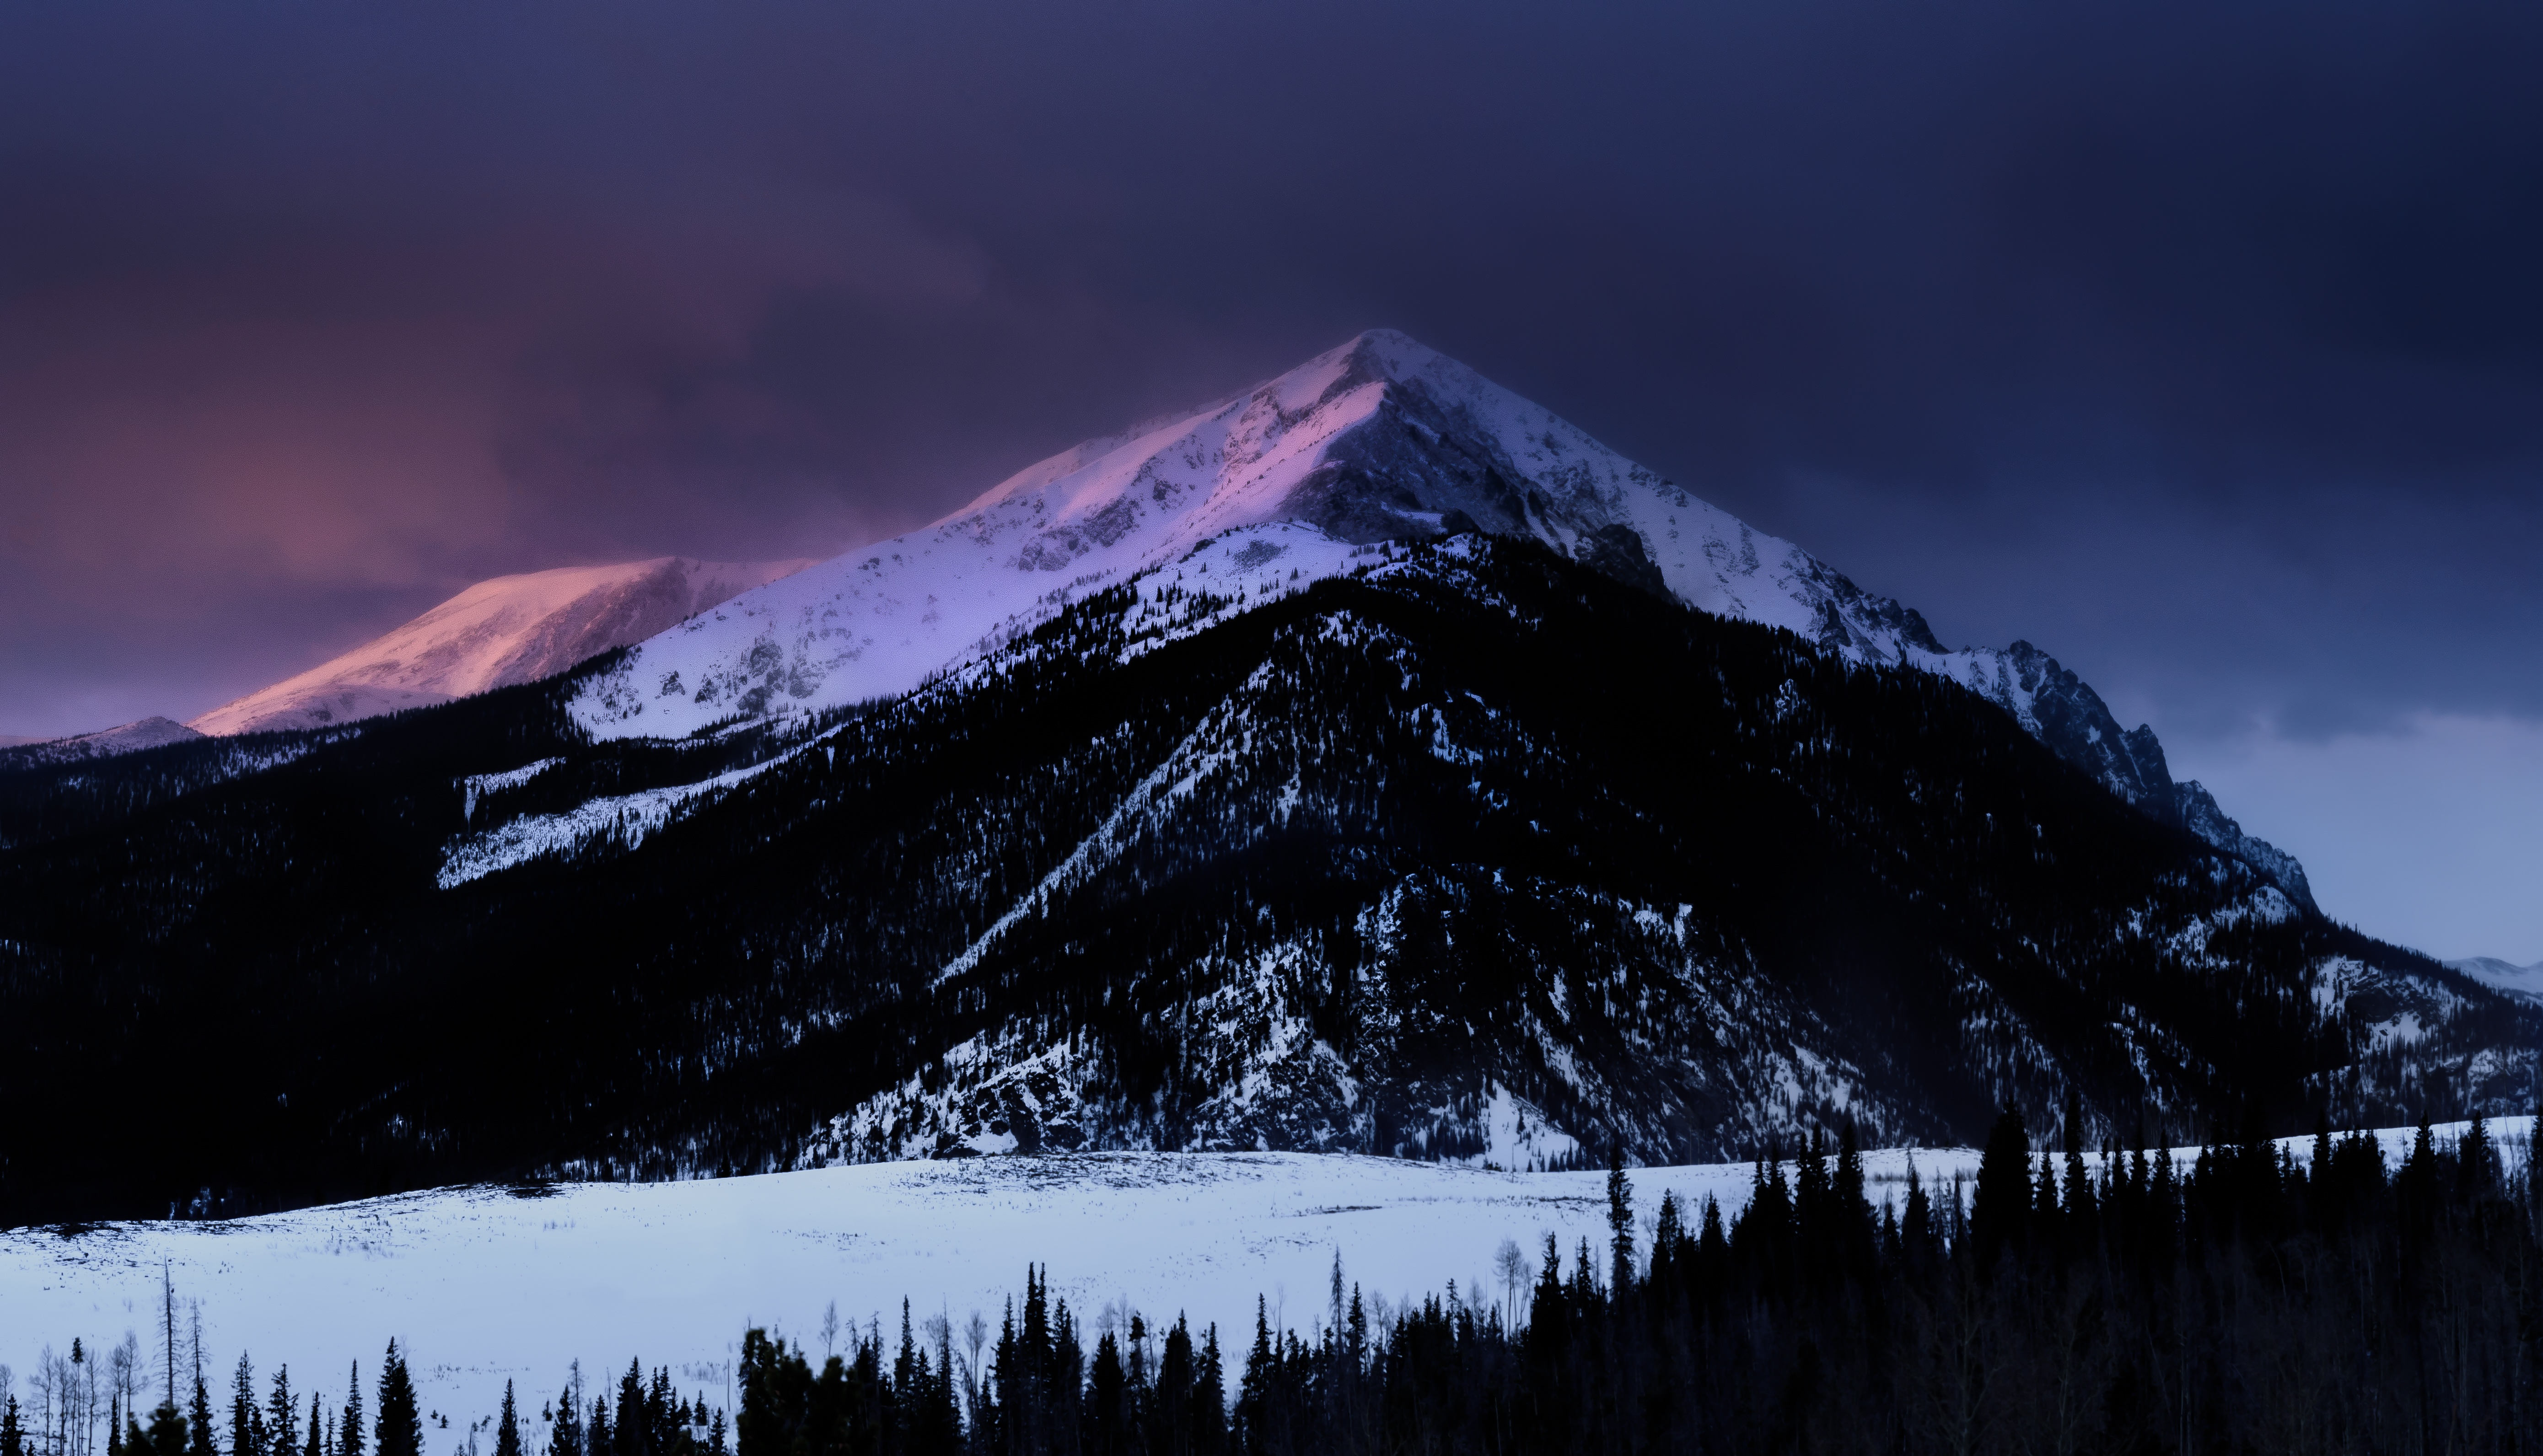 Dawn Mountain Nature Snow Winter Hd Nature 4k Wallpapers Images Backgrounds Photos And Pictures